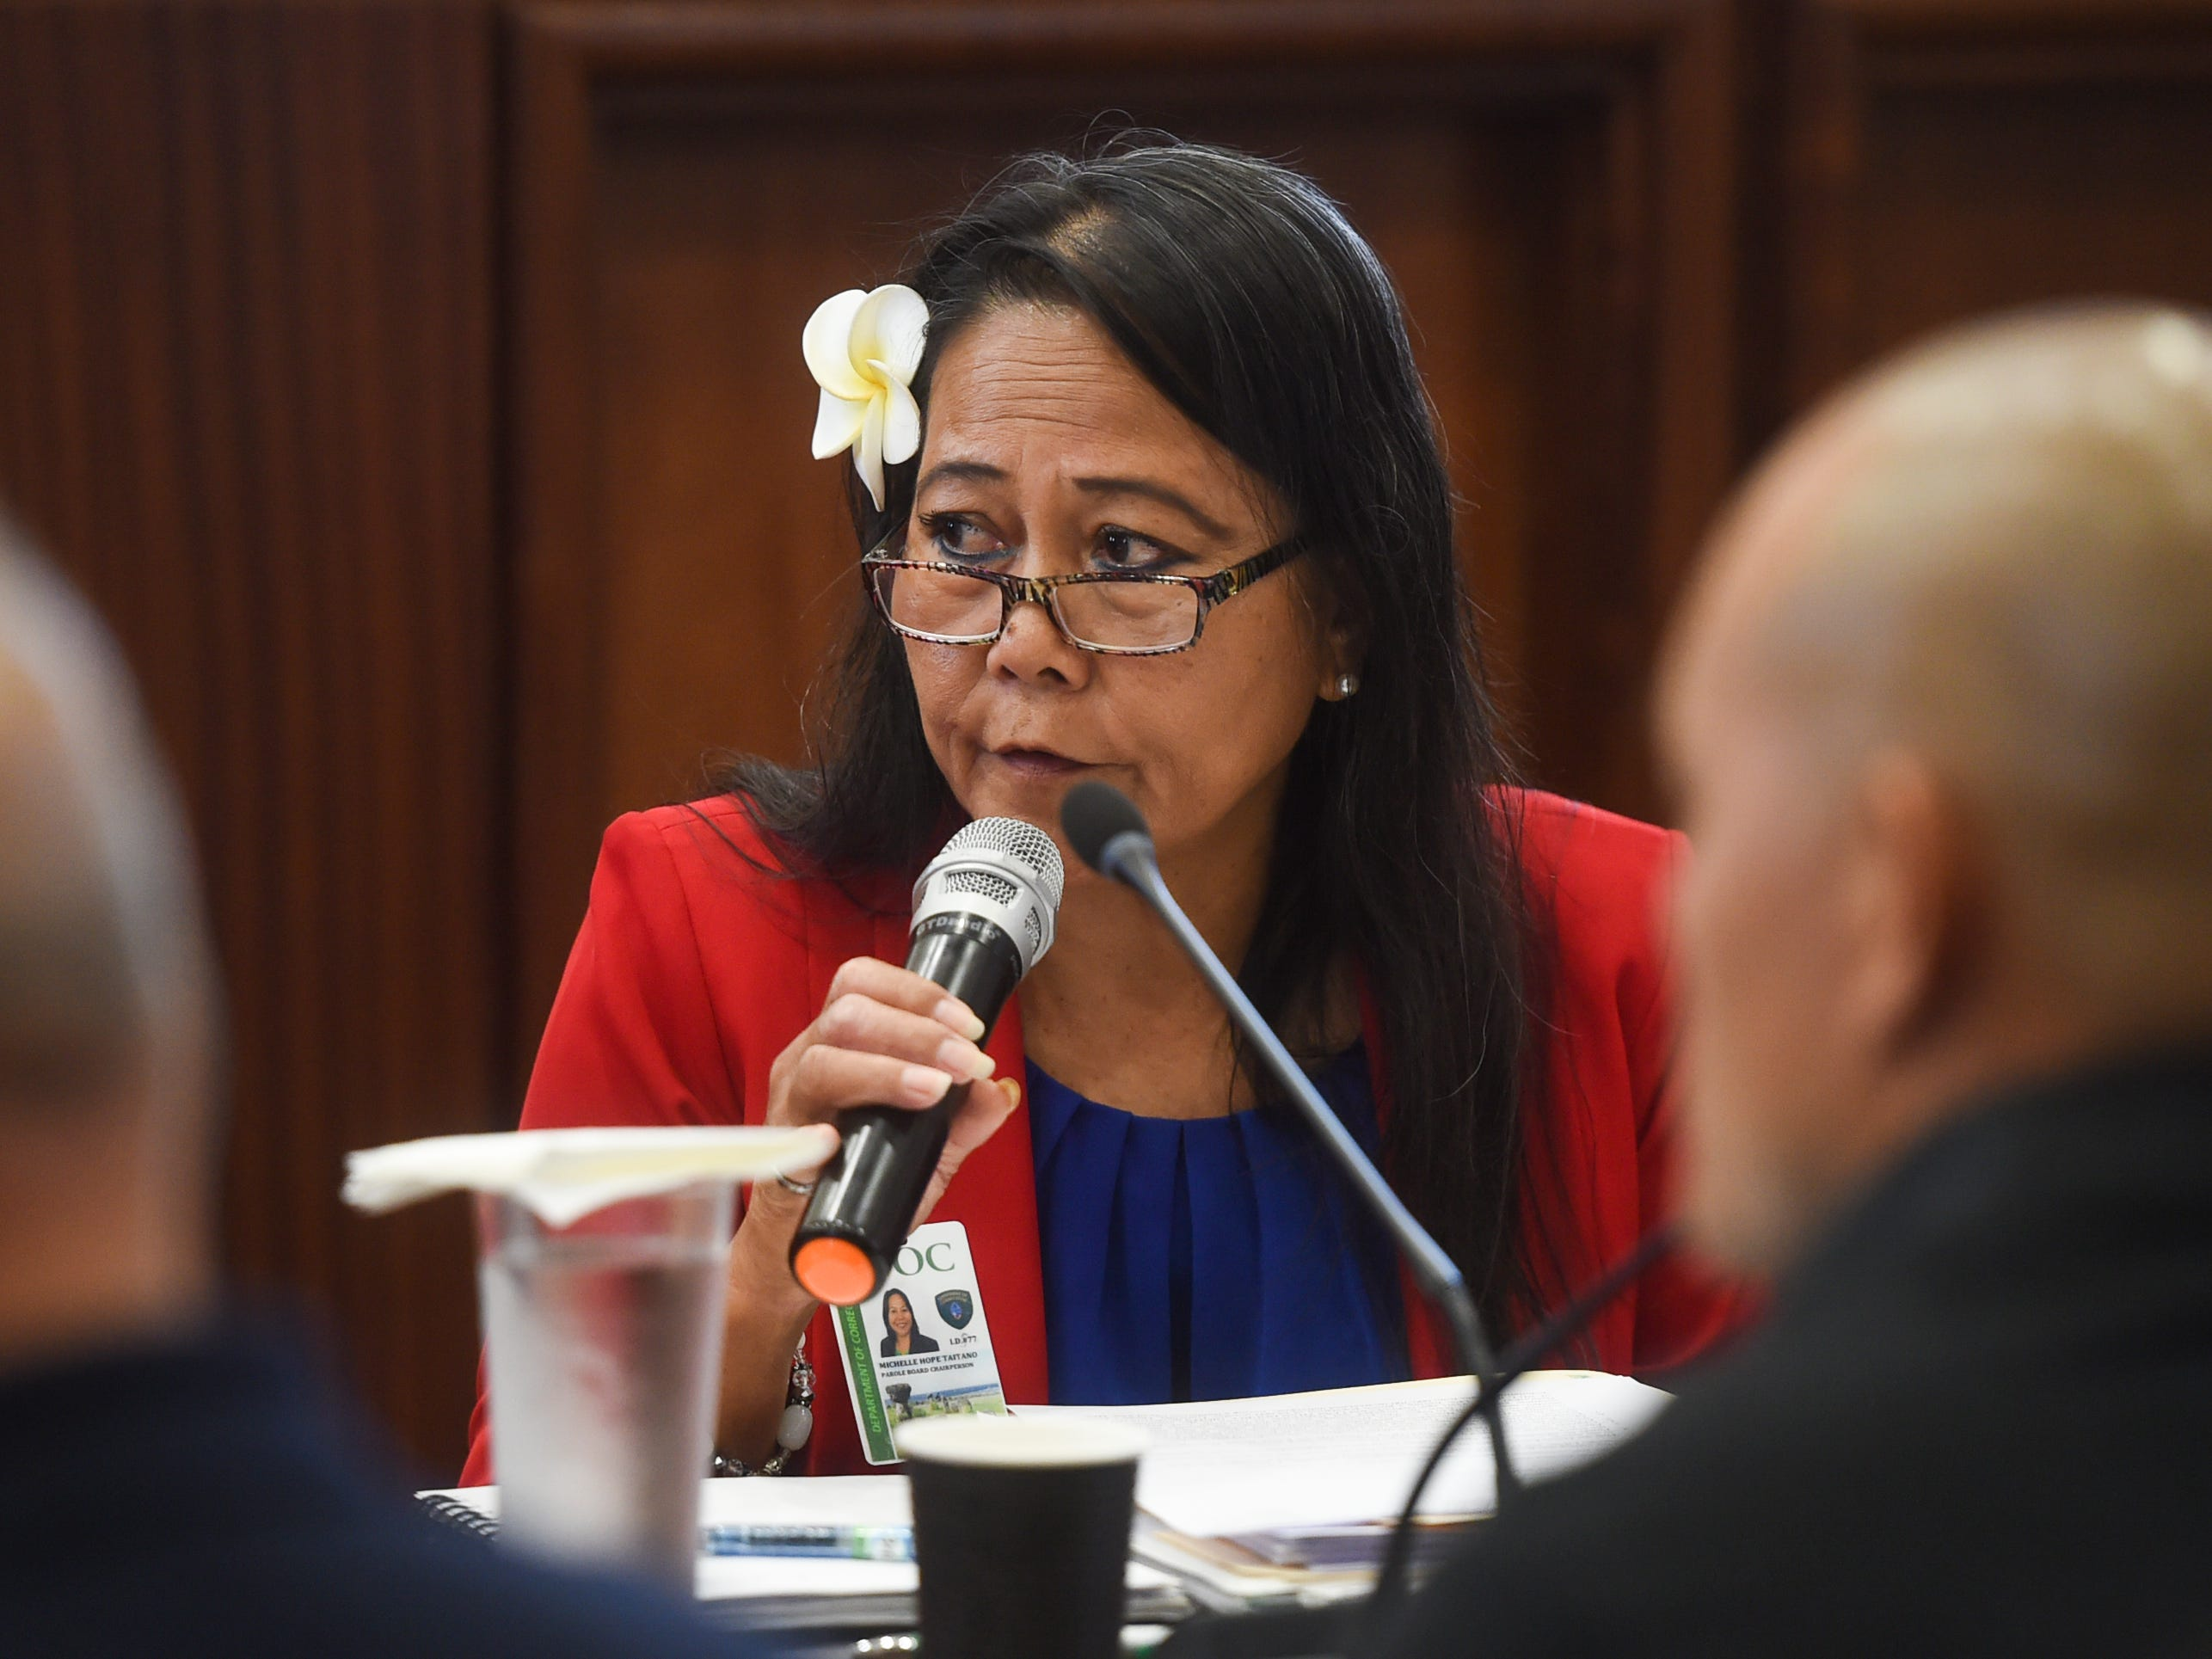 MiChelle Hope Taitano, the Guam Parole Board chairwoman, answers questions by Sen. Therese Terlaje during a roundtable discussion on sentencing laws, rehabilitation, and parole at the Guam Congress Building in Hagåtña on May 6, 2019.